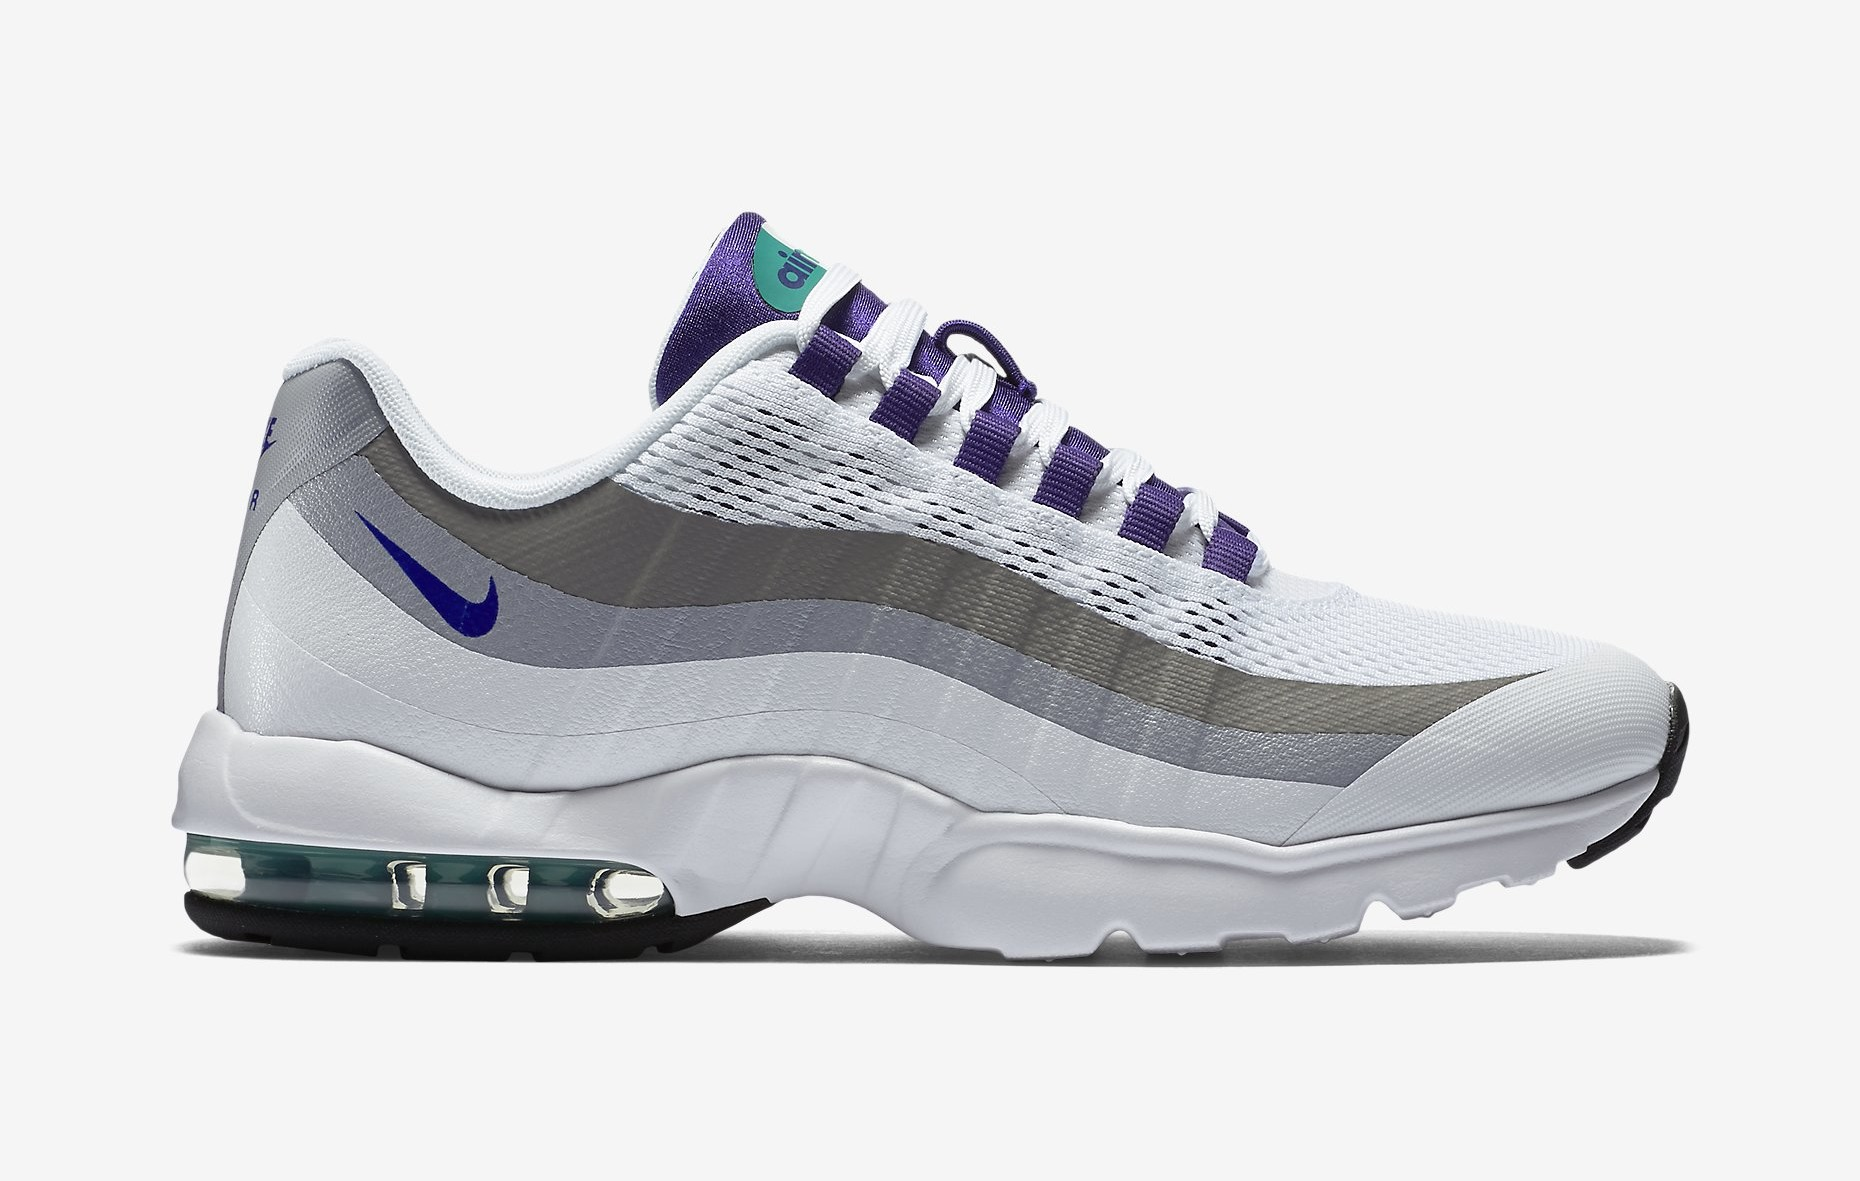 nike air max 95 ultra wmns grape sneakers addict. Black Bedroom Furniture Sets. Home Design Ideas